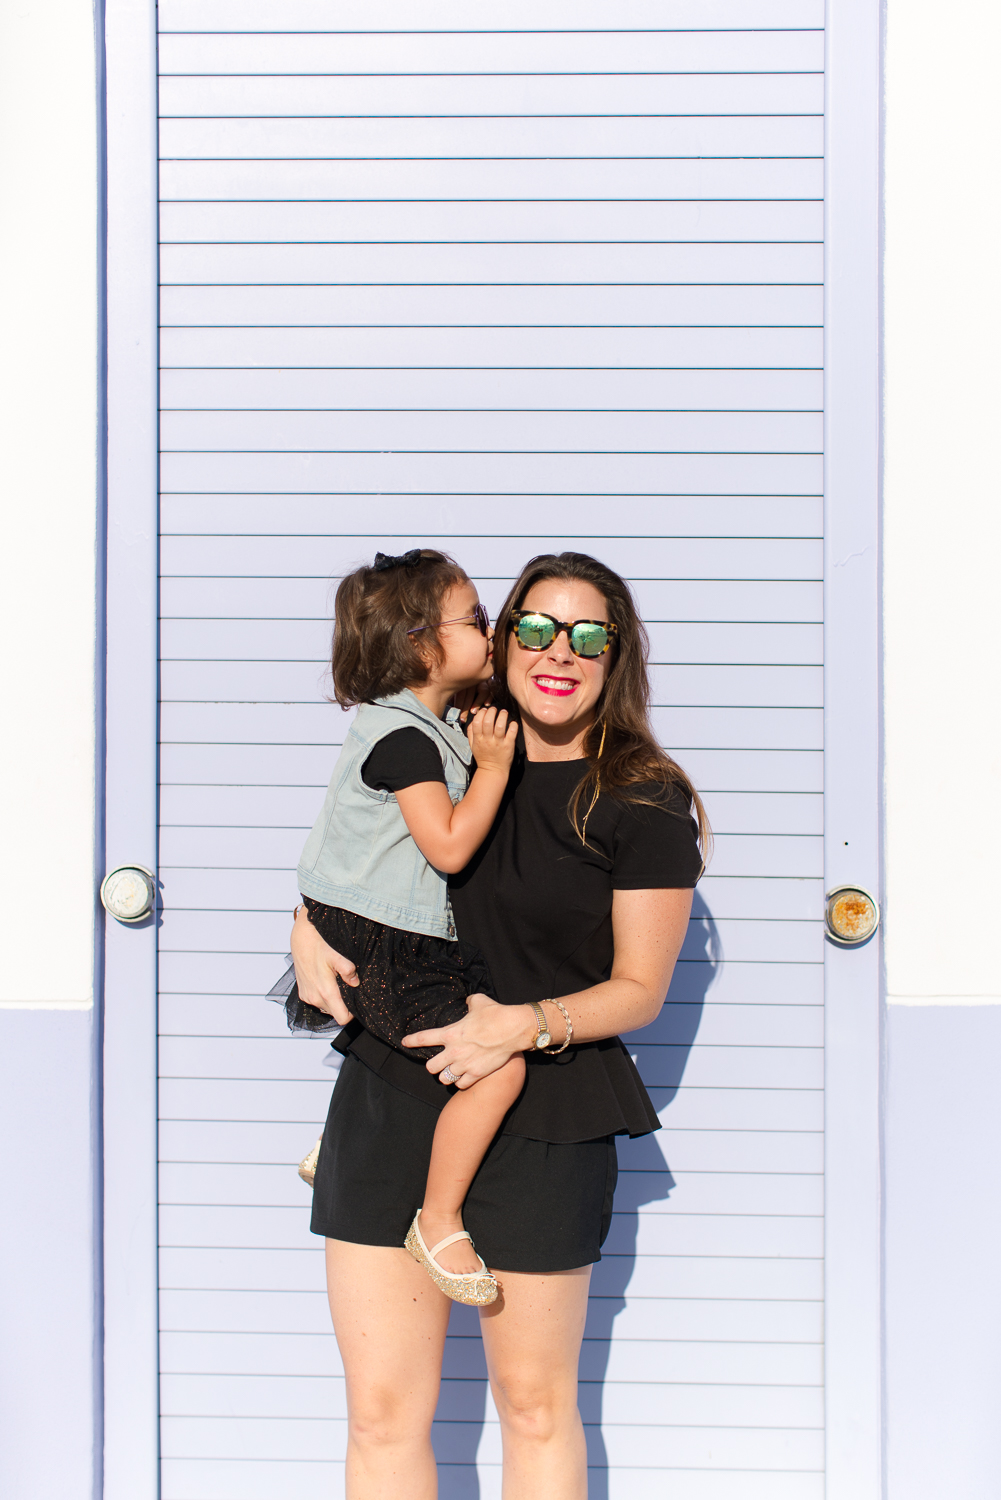 MrsLizCastro__Ueno_Mommy_and_Me_Squarespace-5.jpg